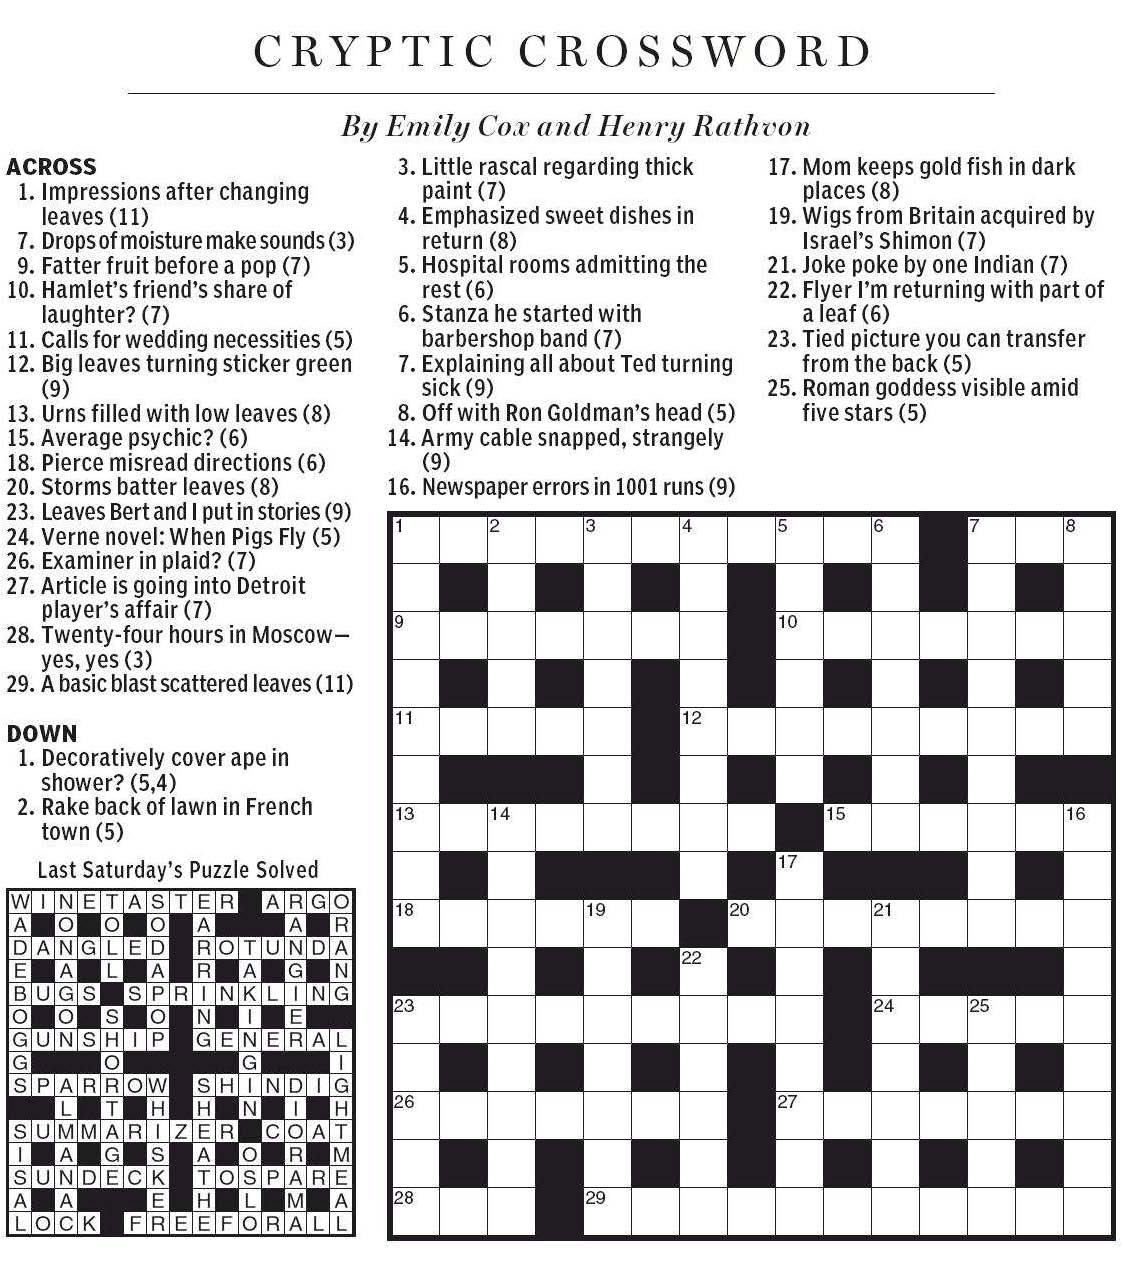 National post cryptic crossword forum october 2012 introduction biocorpaavc